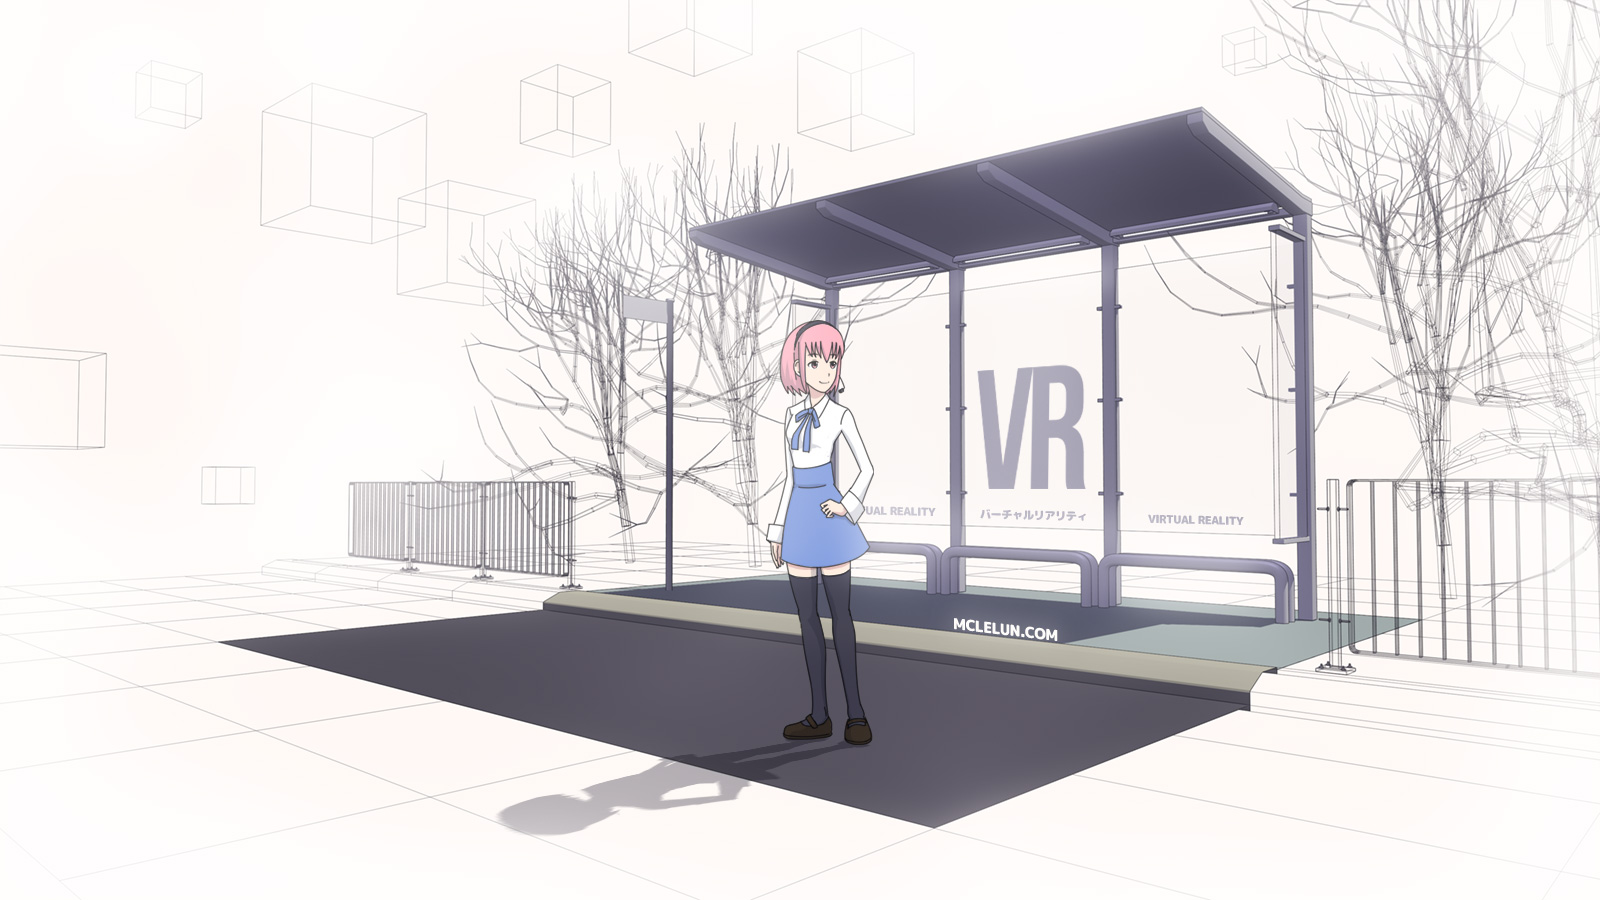 virtual_reality_by_mclelun-d7gbz9q.jpg